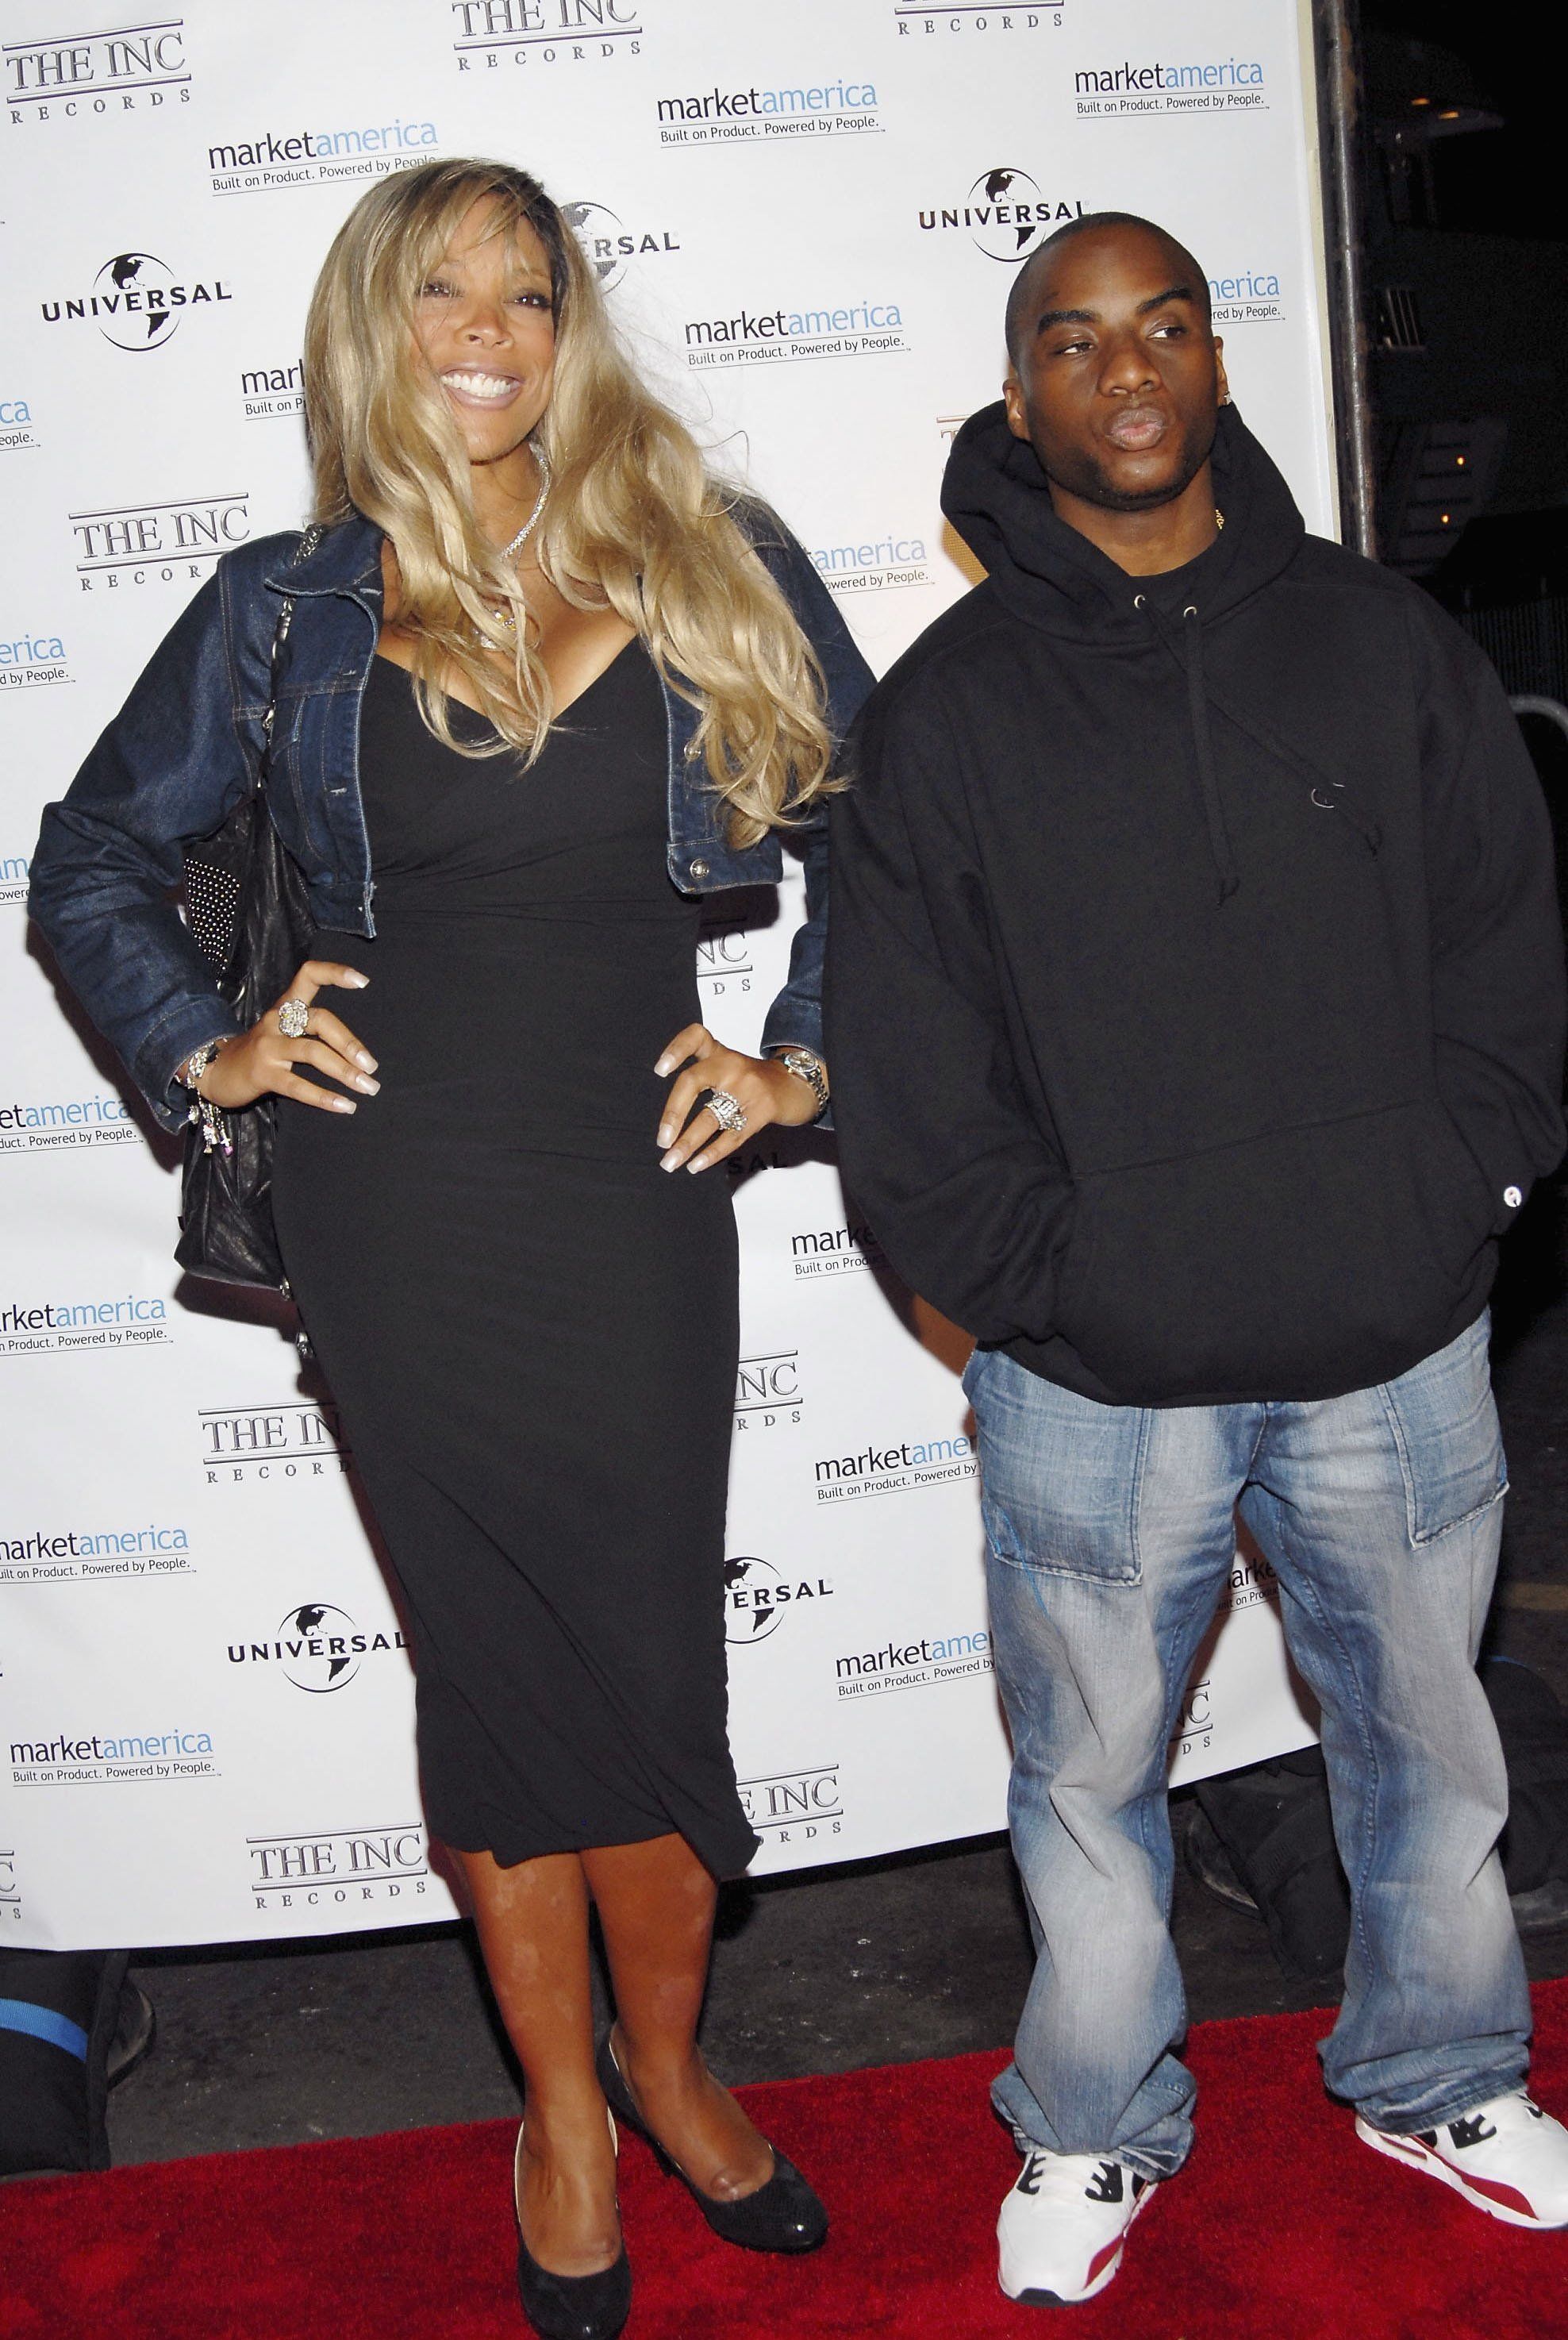 Wendy Williams and Charlamagne attend Irv 'Gotti' Lorenzo's Universal Motown Records Group party at the Utopia III on September 28, 2006 in New York City. | Source: Getty